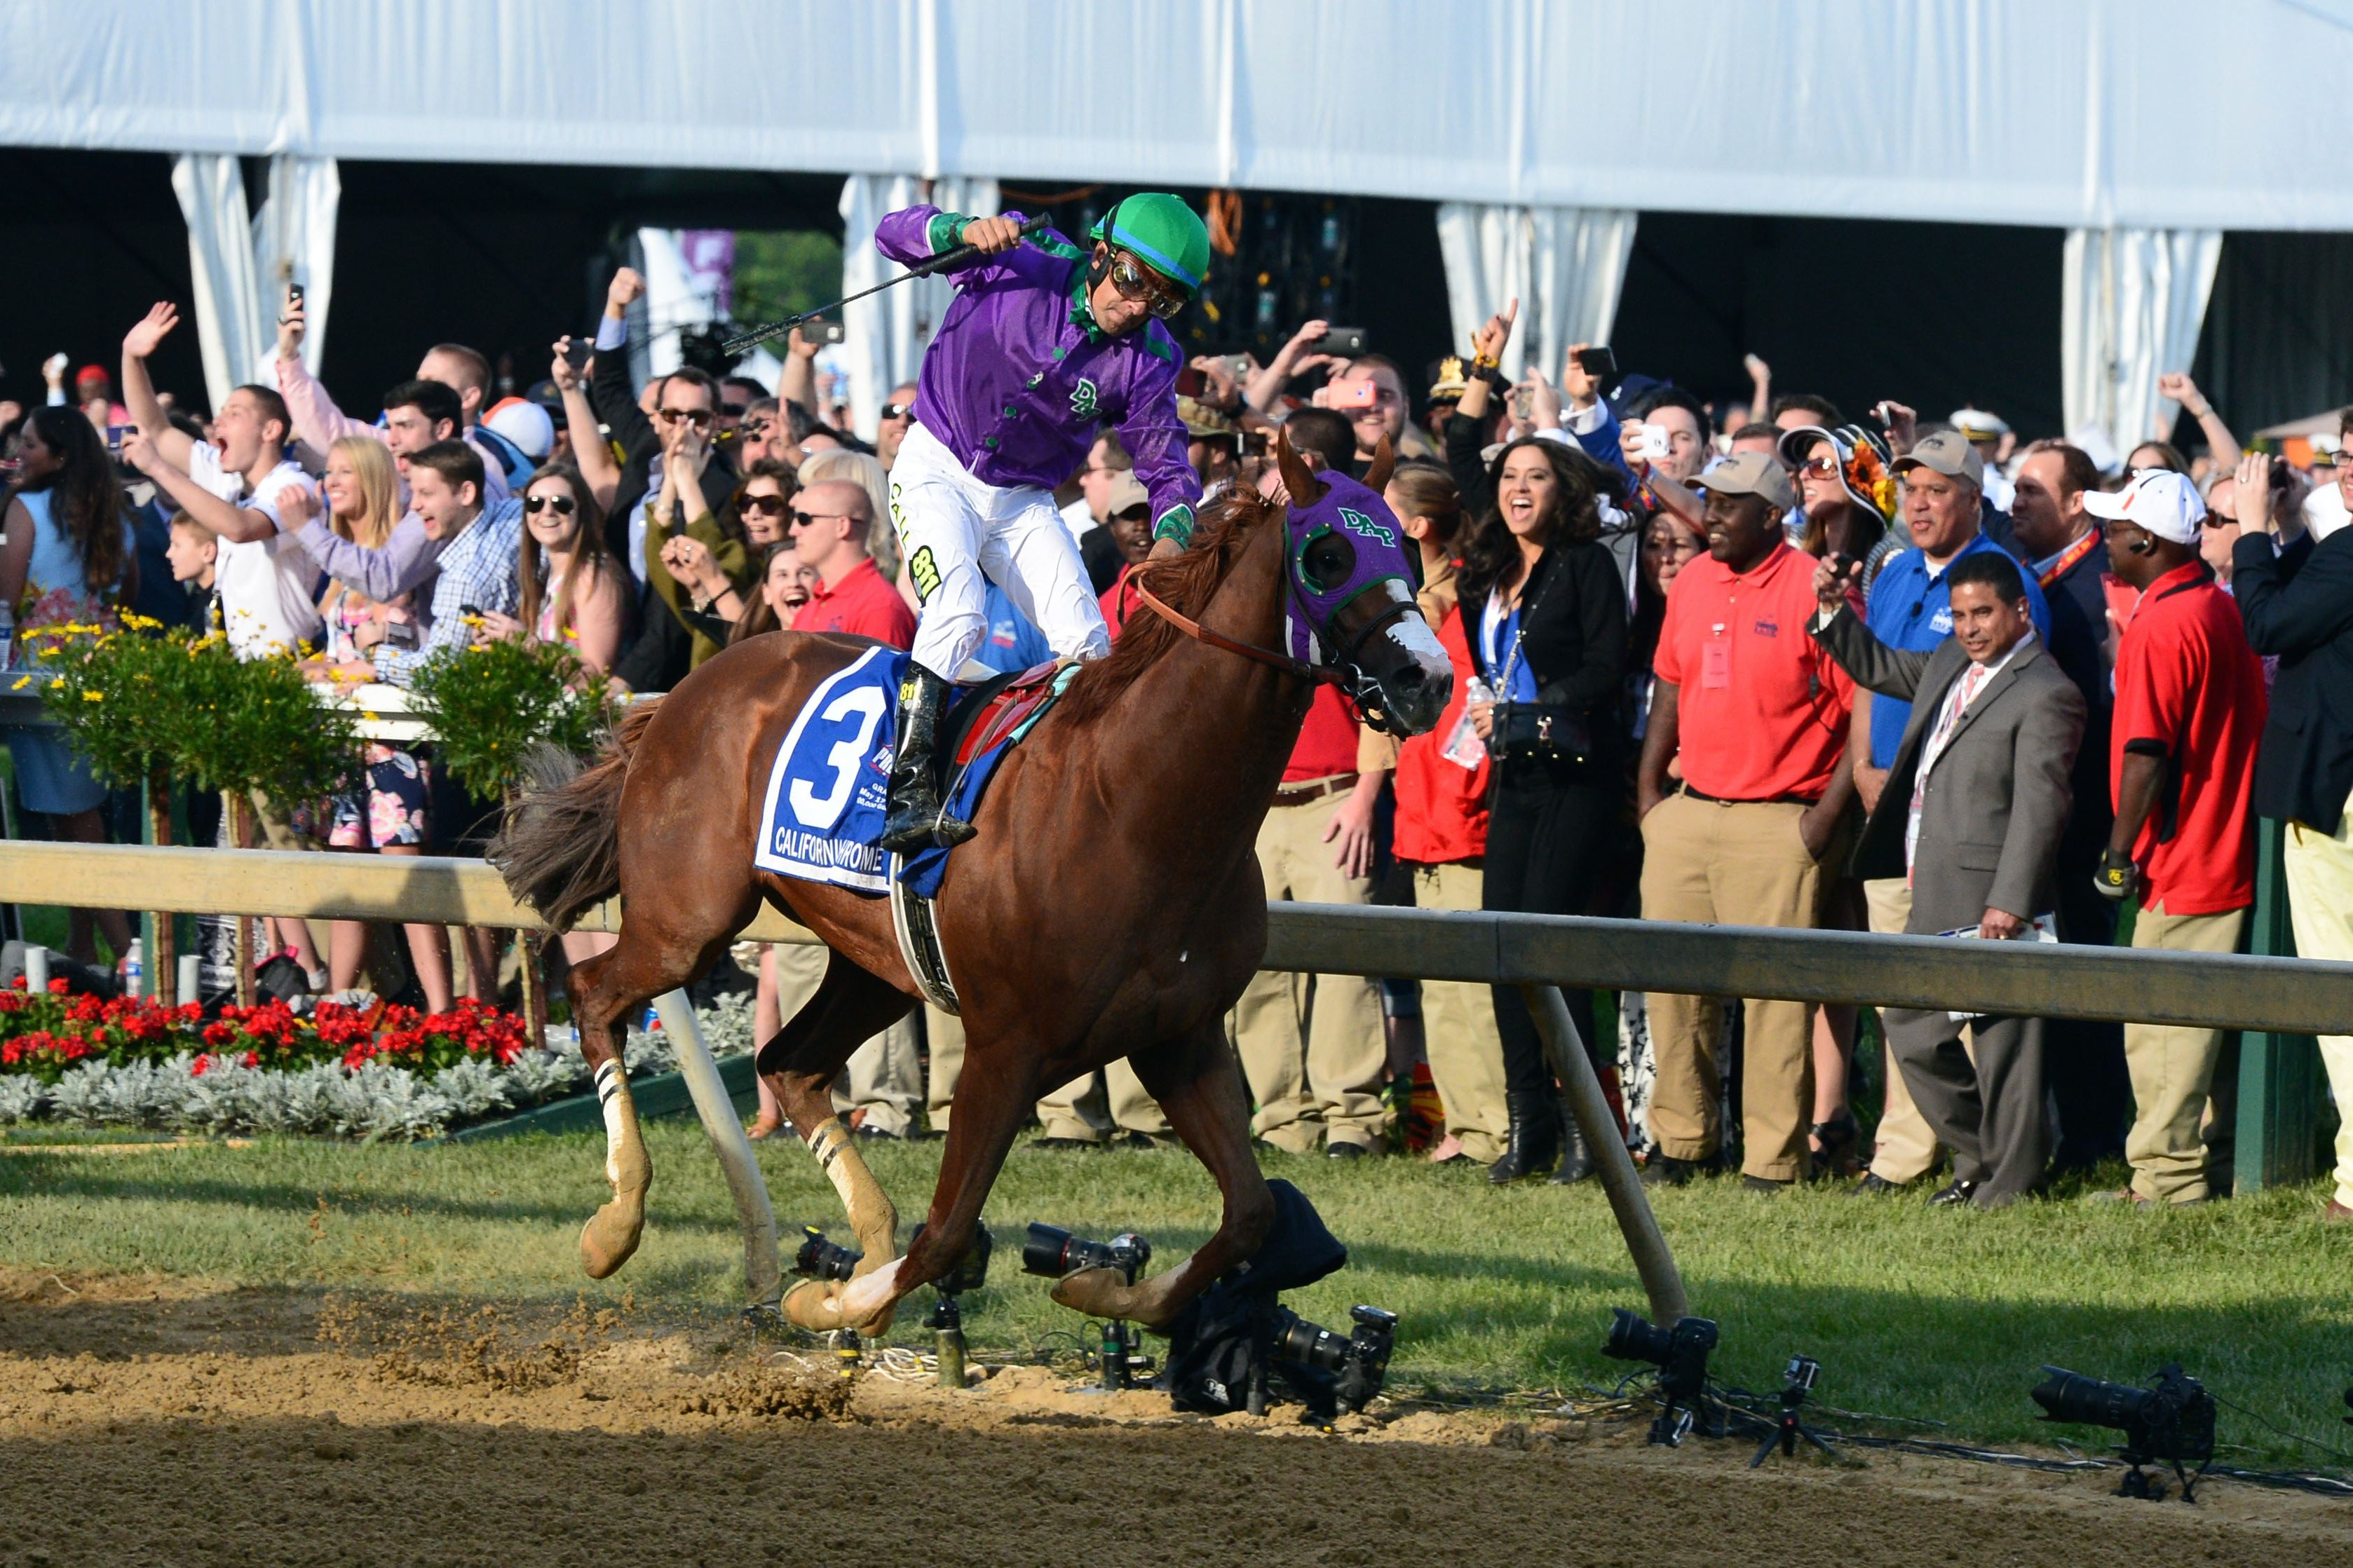 horse racing, Preakness Stakes